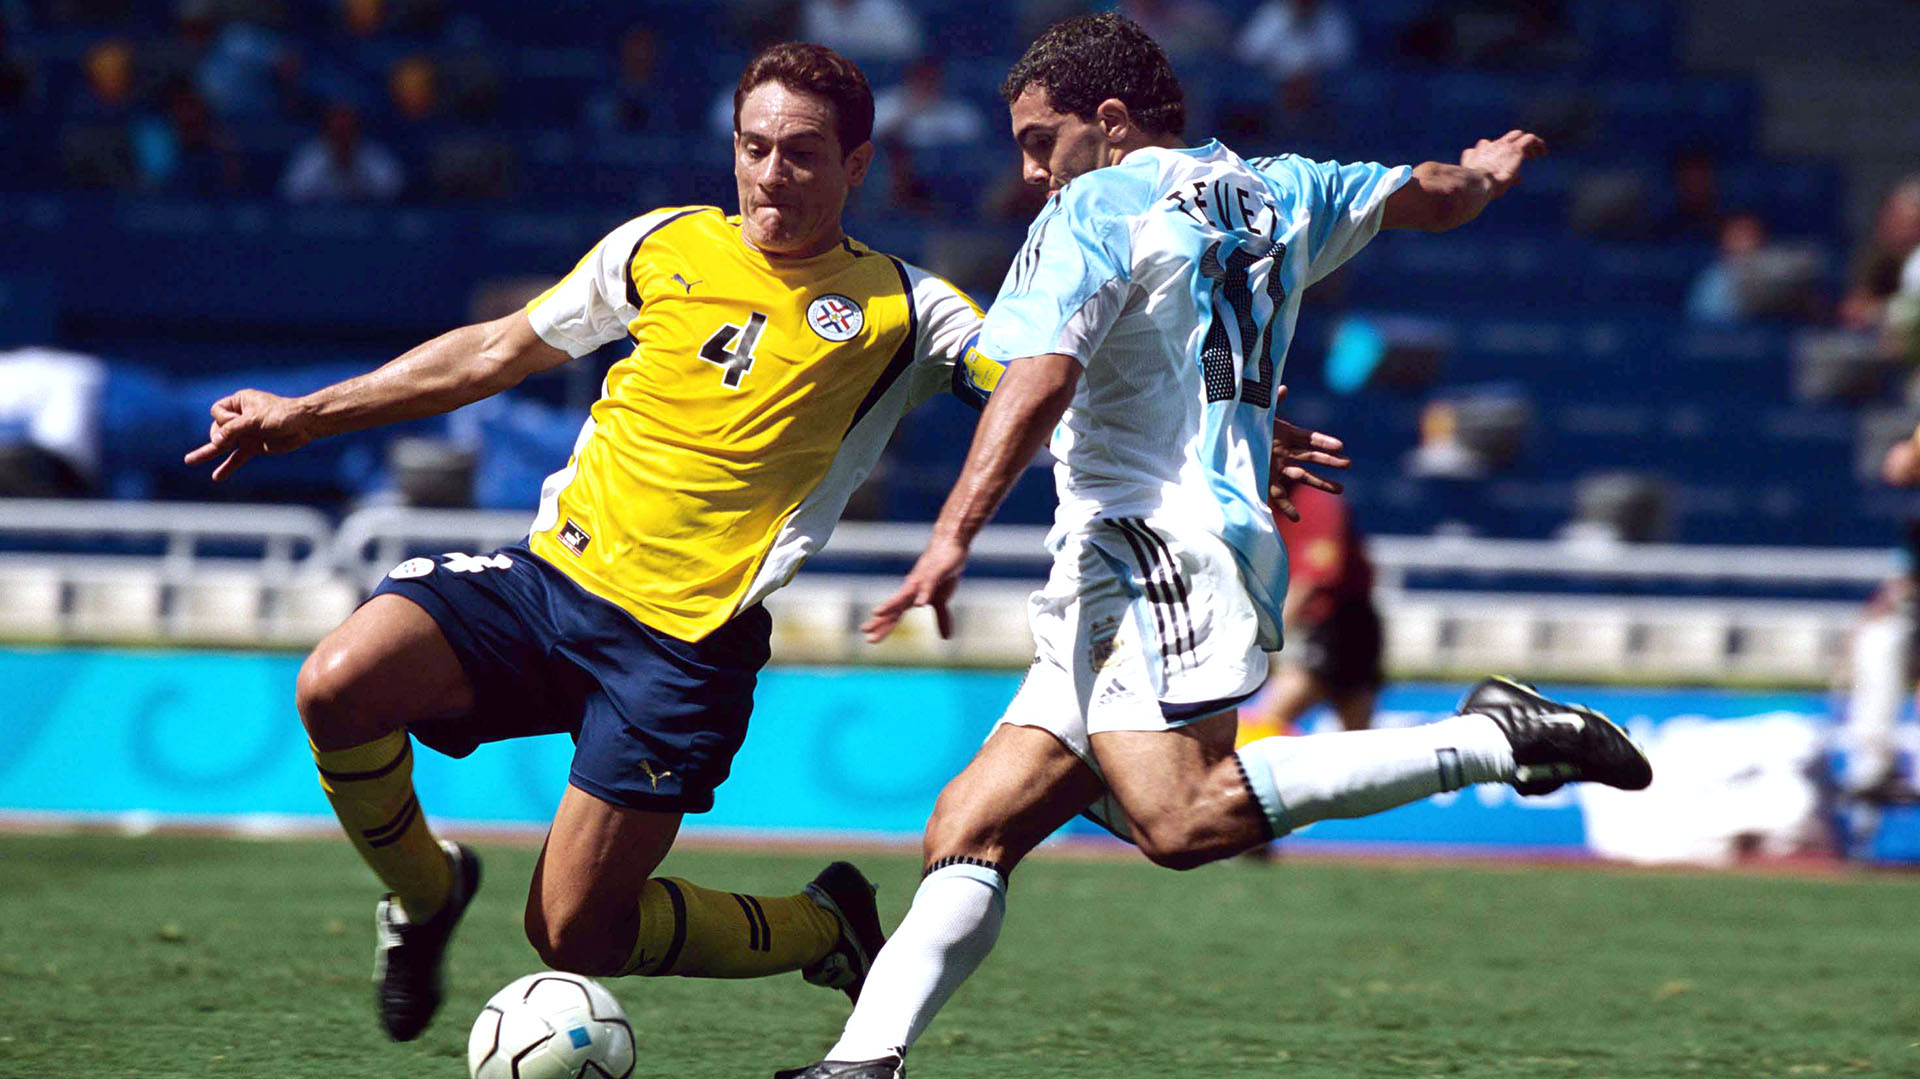 Mandatory Credit: Photo by Colorsport/Shutterstock (7435973y) Carlos Tevez (Argentina) Carlos Gamarra (Par) Mens Football Final Argentina v Paraguay 28/8/2004 Athens Olympics 2004 Athens Olympics - 28 Aug 2004